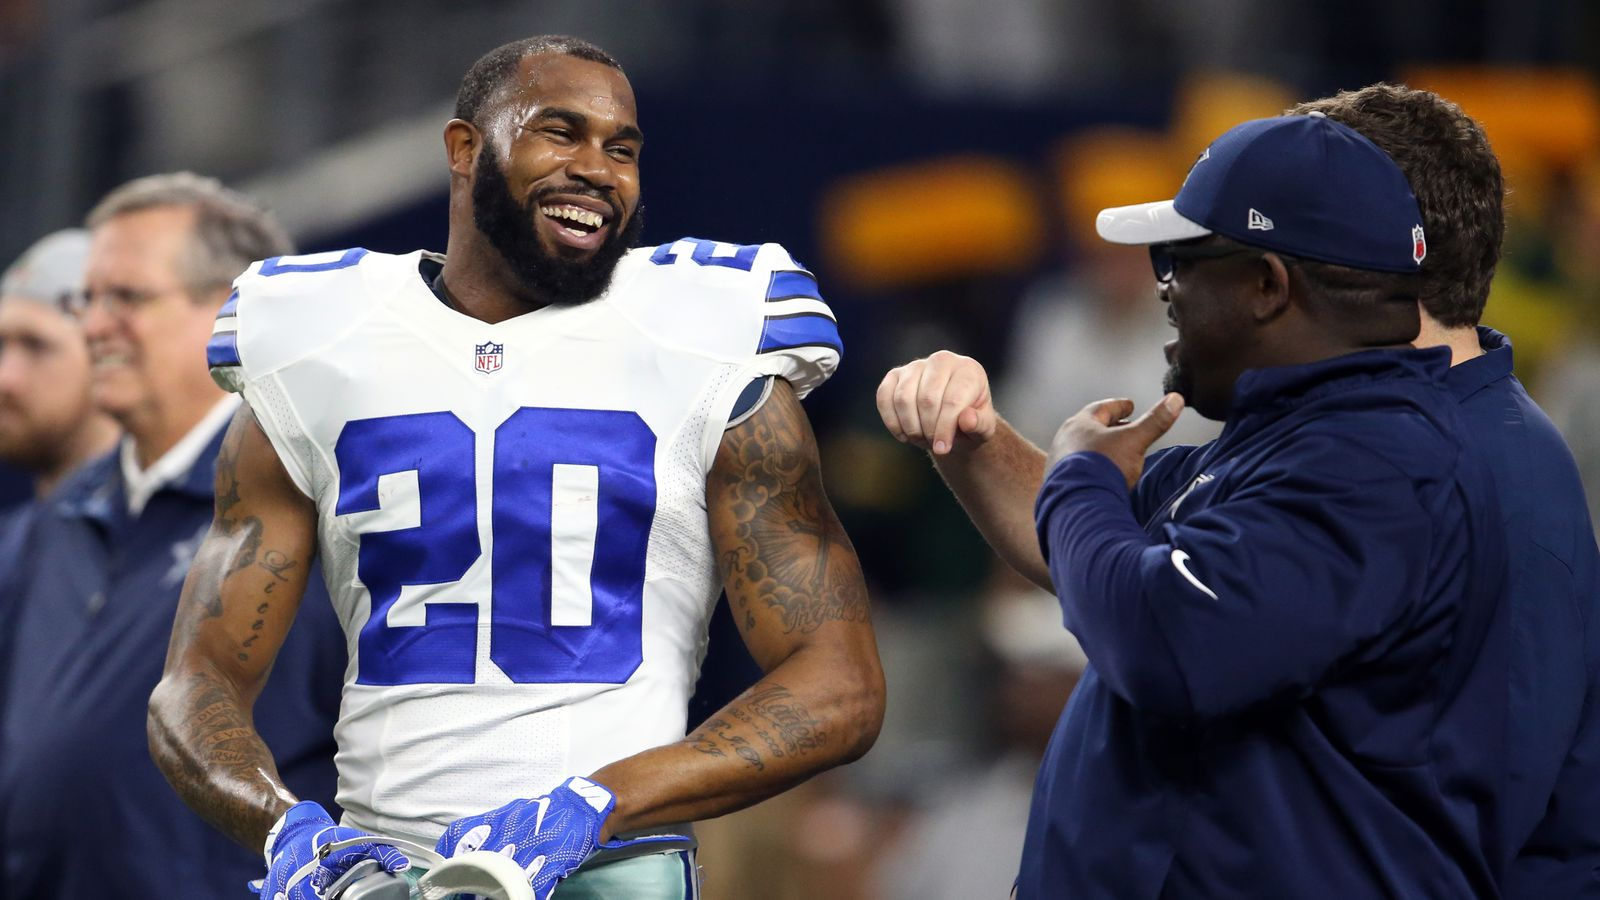 Darren Mcfadden Agrees To 1 Year Deal With Cowboys